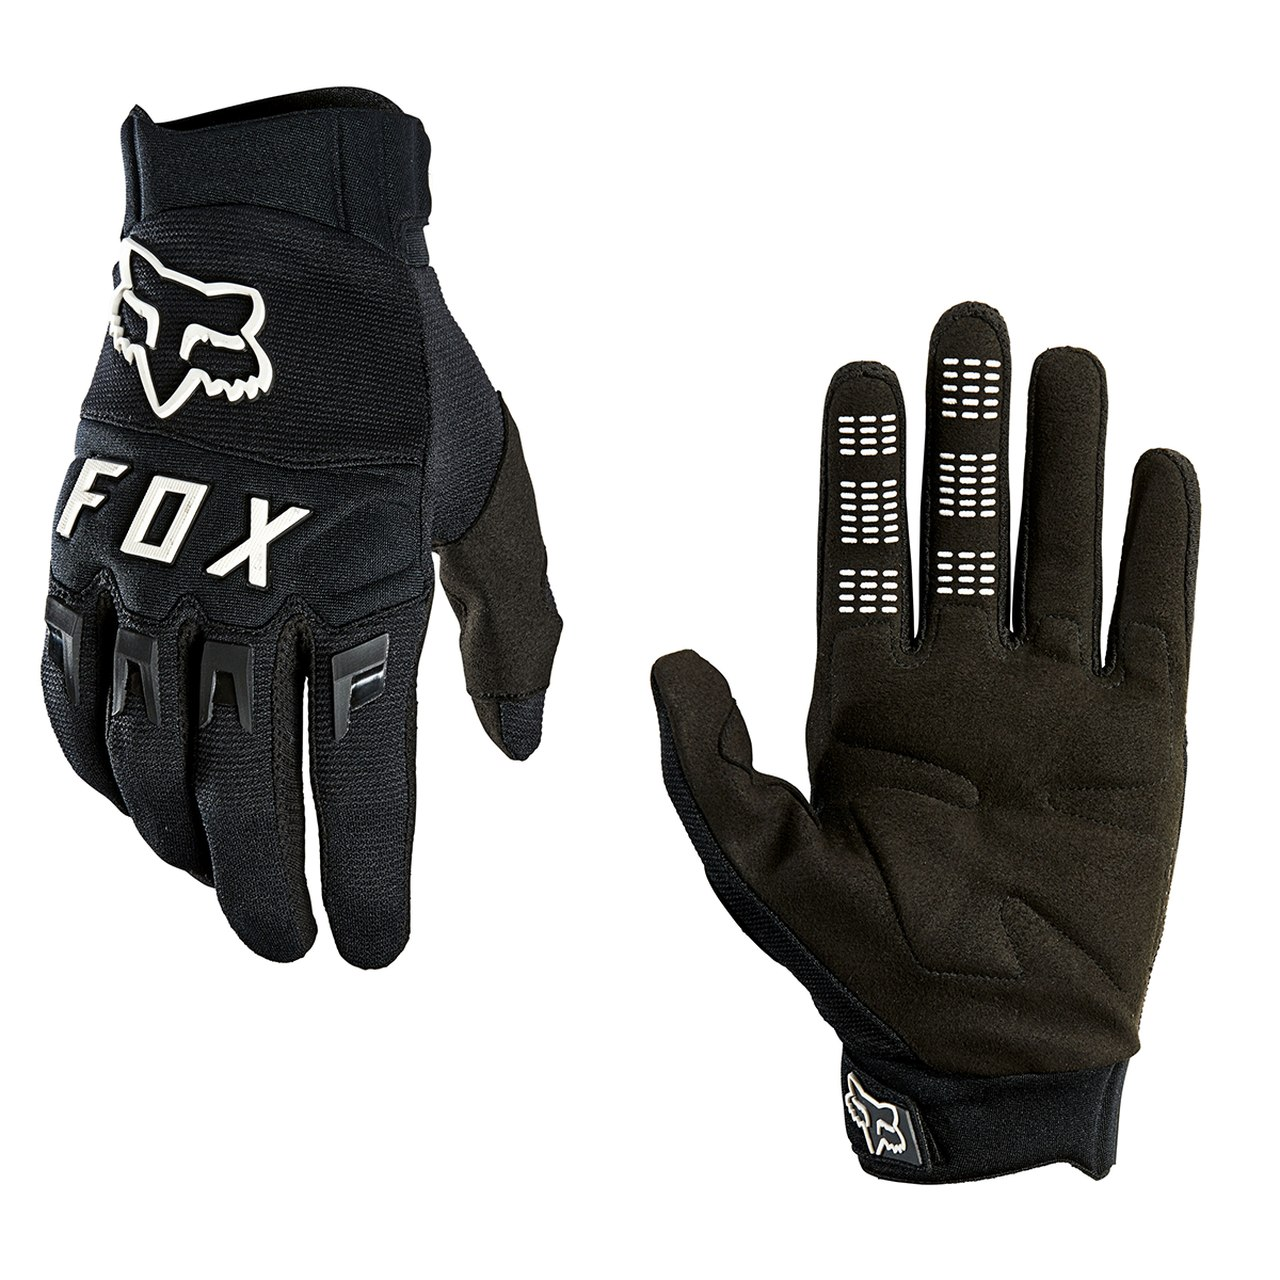 Luva FOX Dirtpaw 2021 - Preto